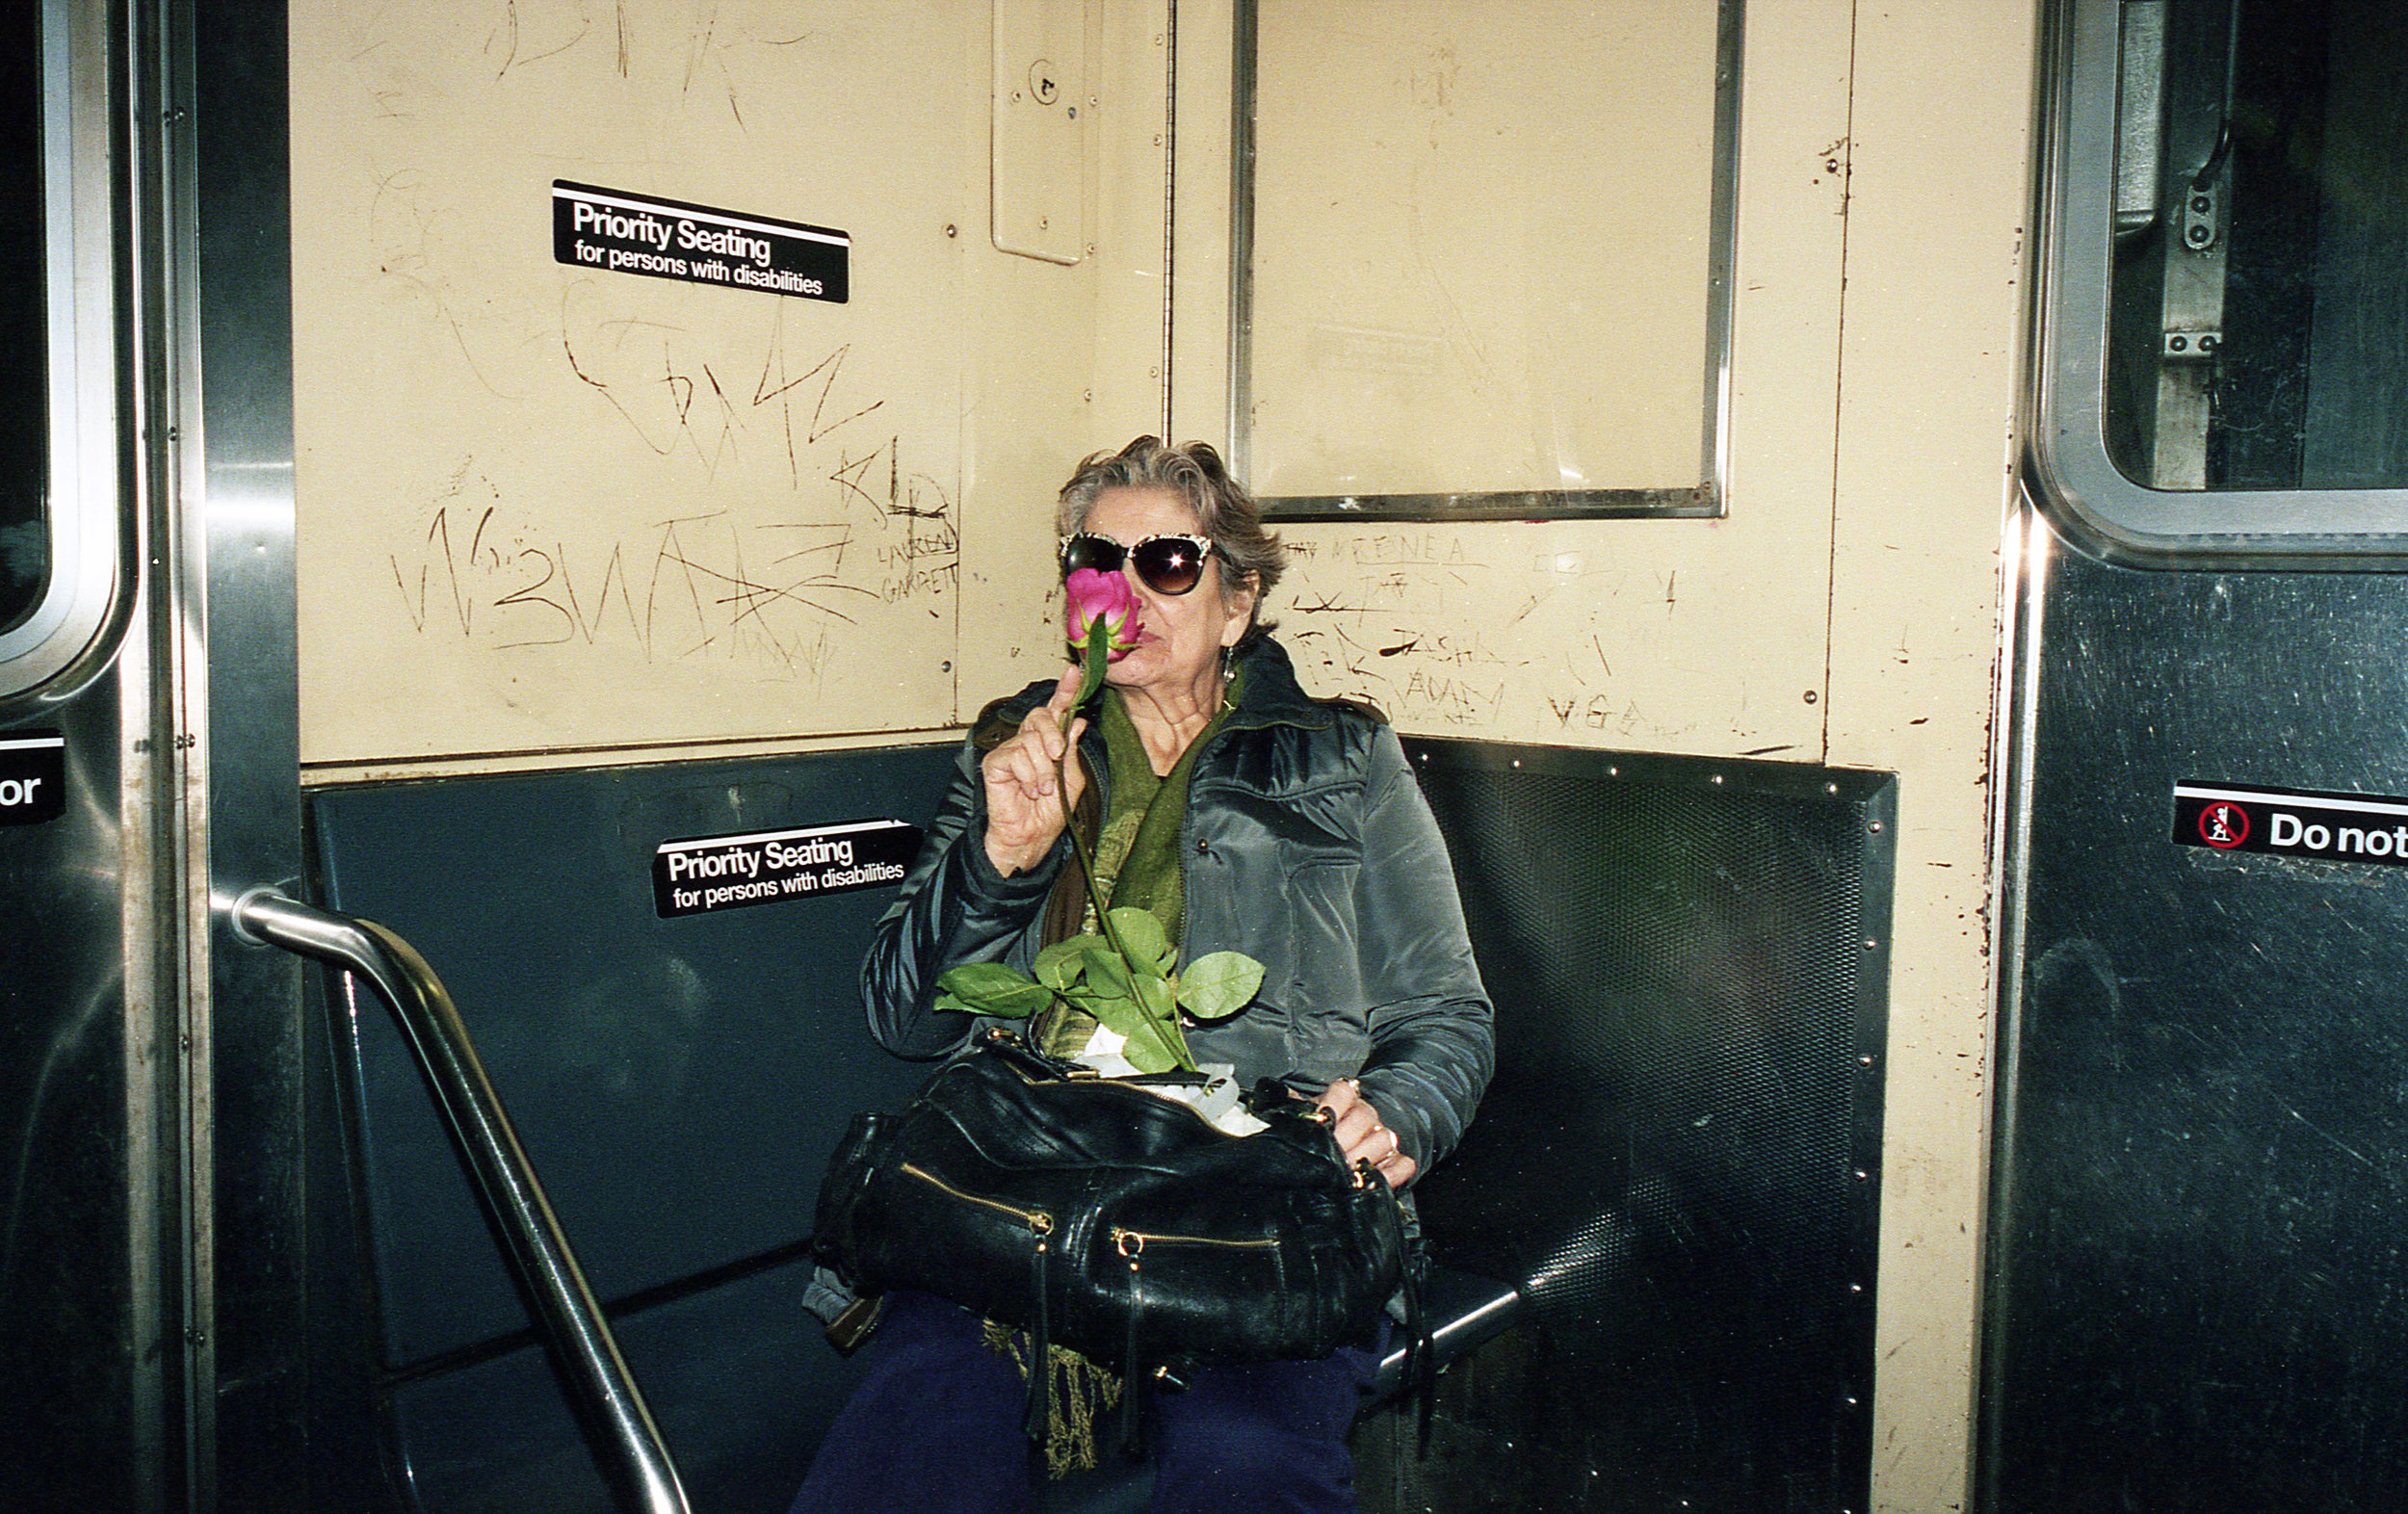 woman smelling rose on train 1.jpg